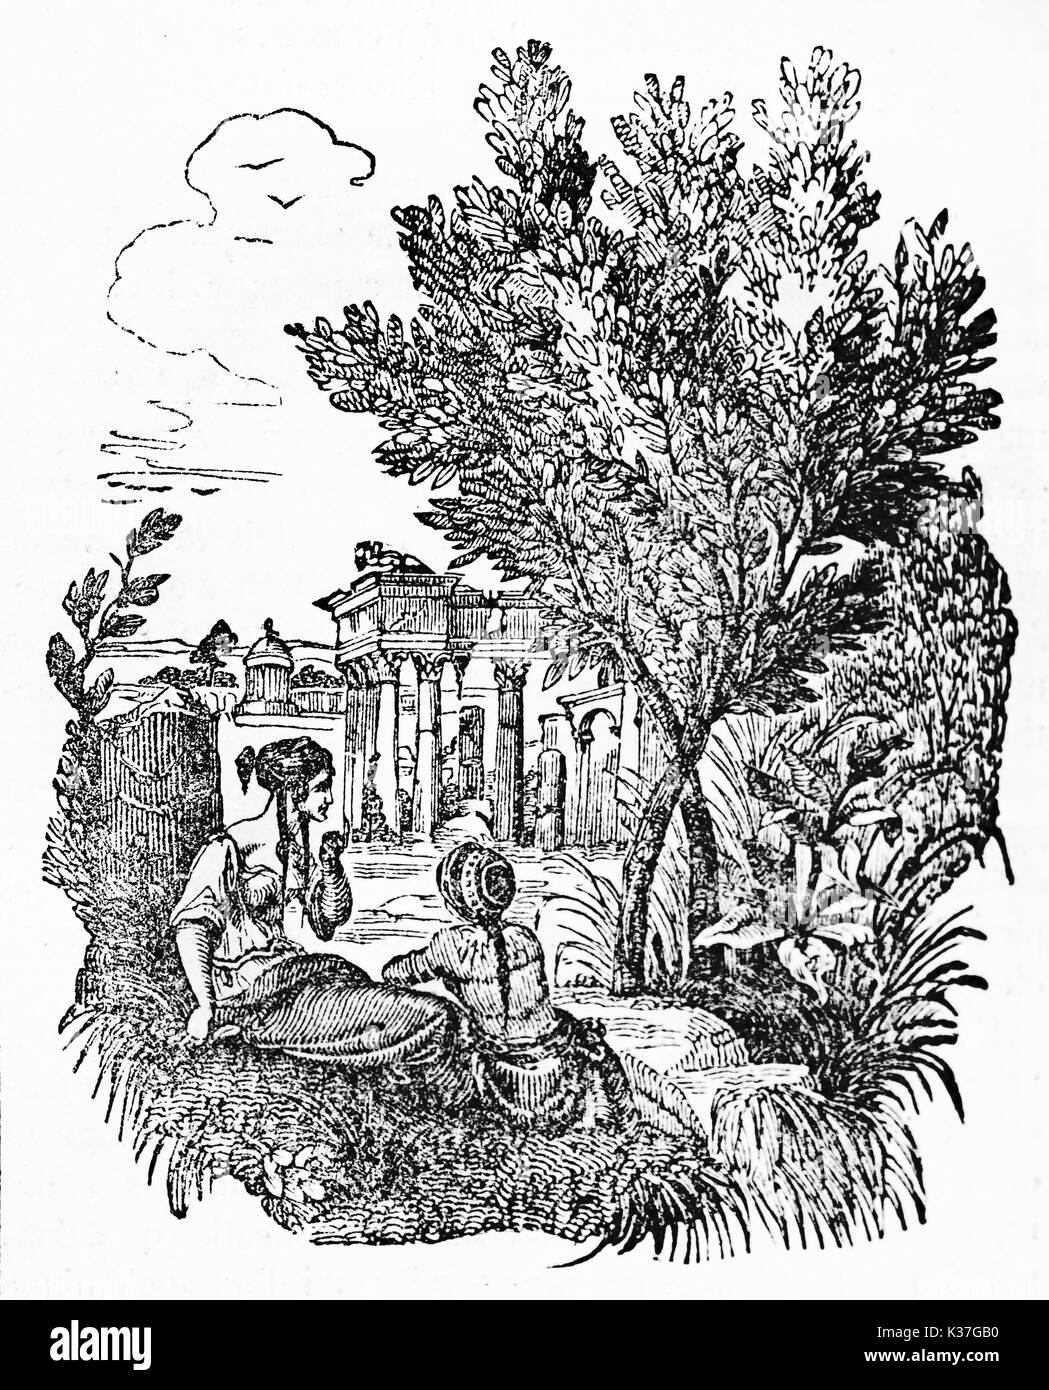 Olive tree standing in an ancient greek bucolic place close to ancient greeks persons. Old Illustration by unidentified author, published on Magasin Pittoresque, Paris, 1834. - Stock Image